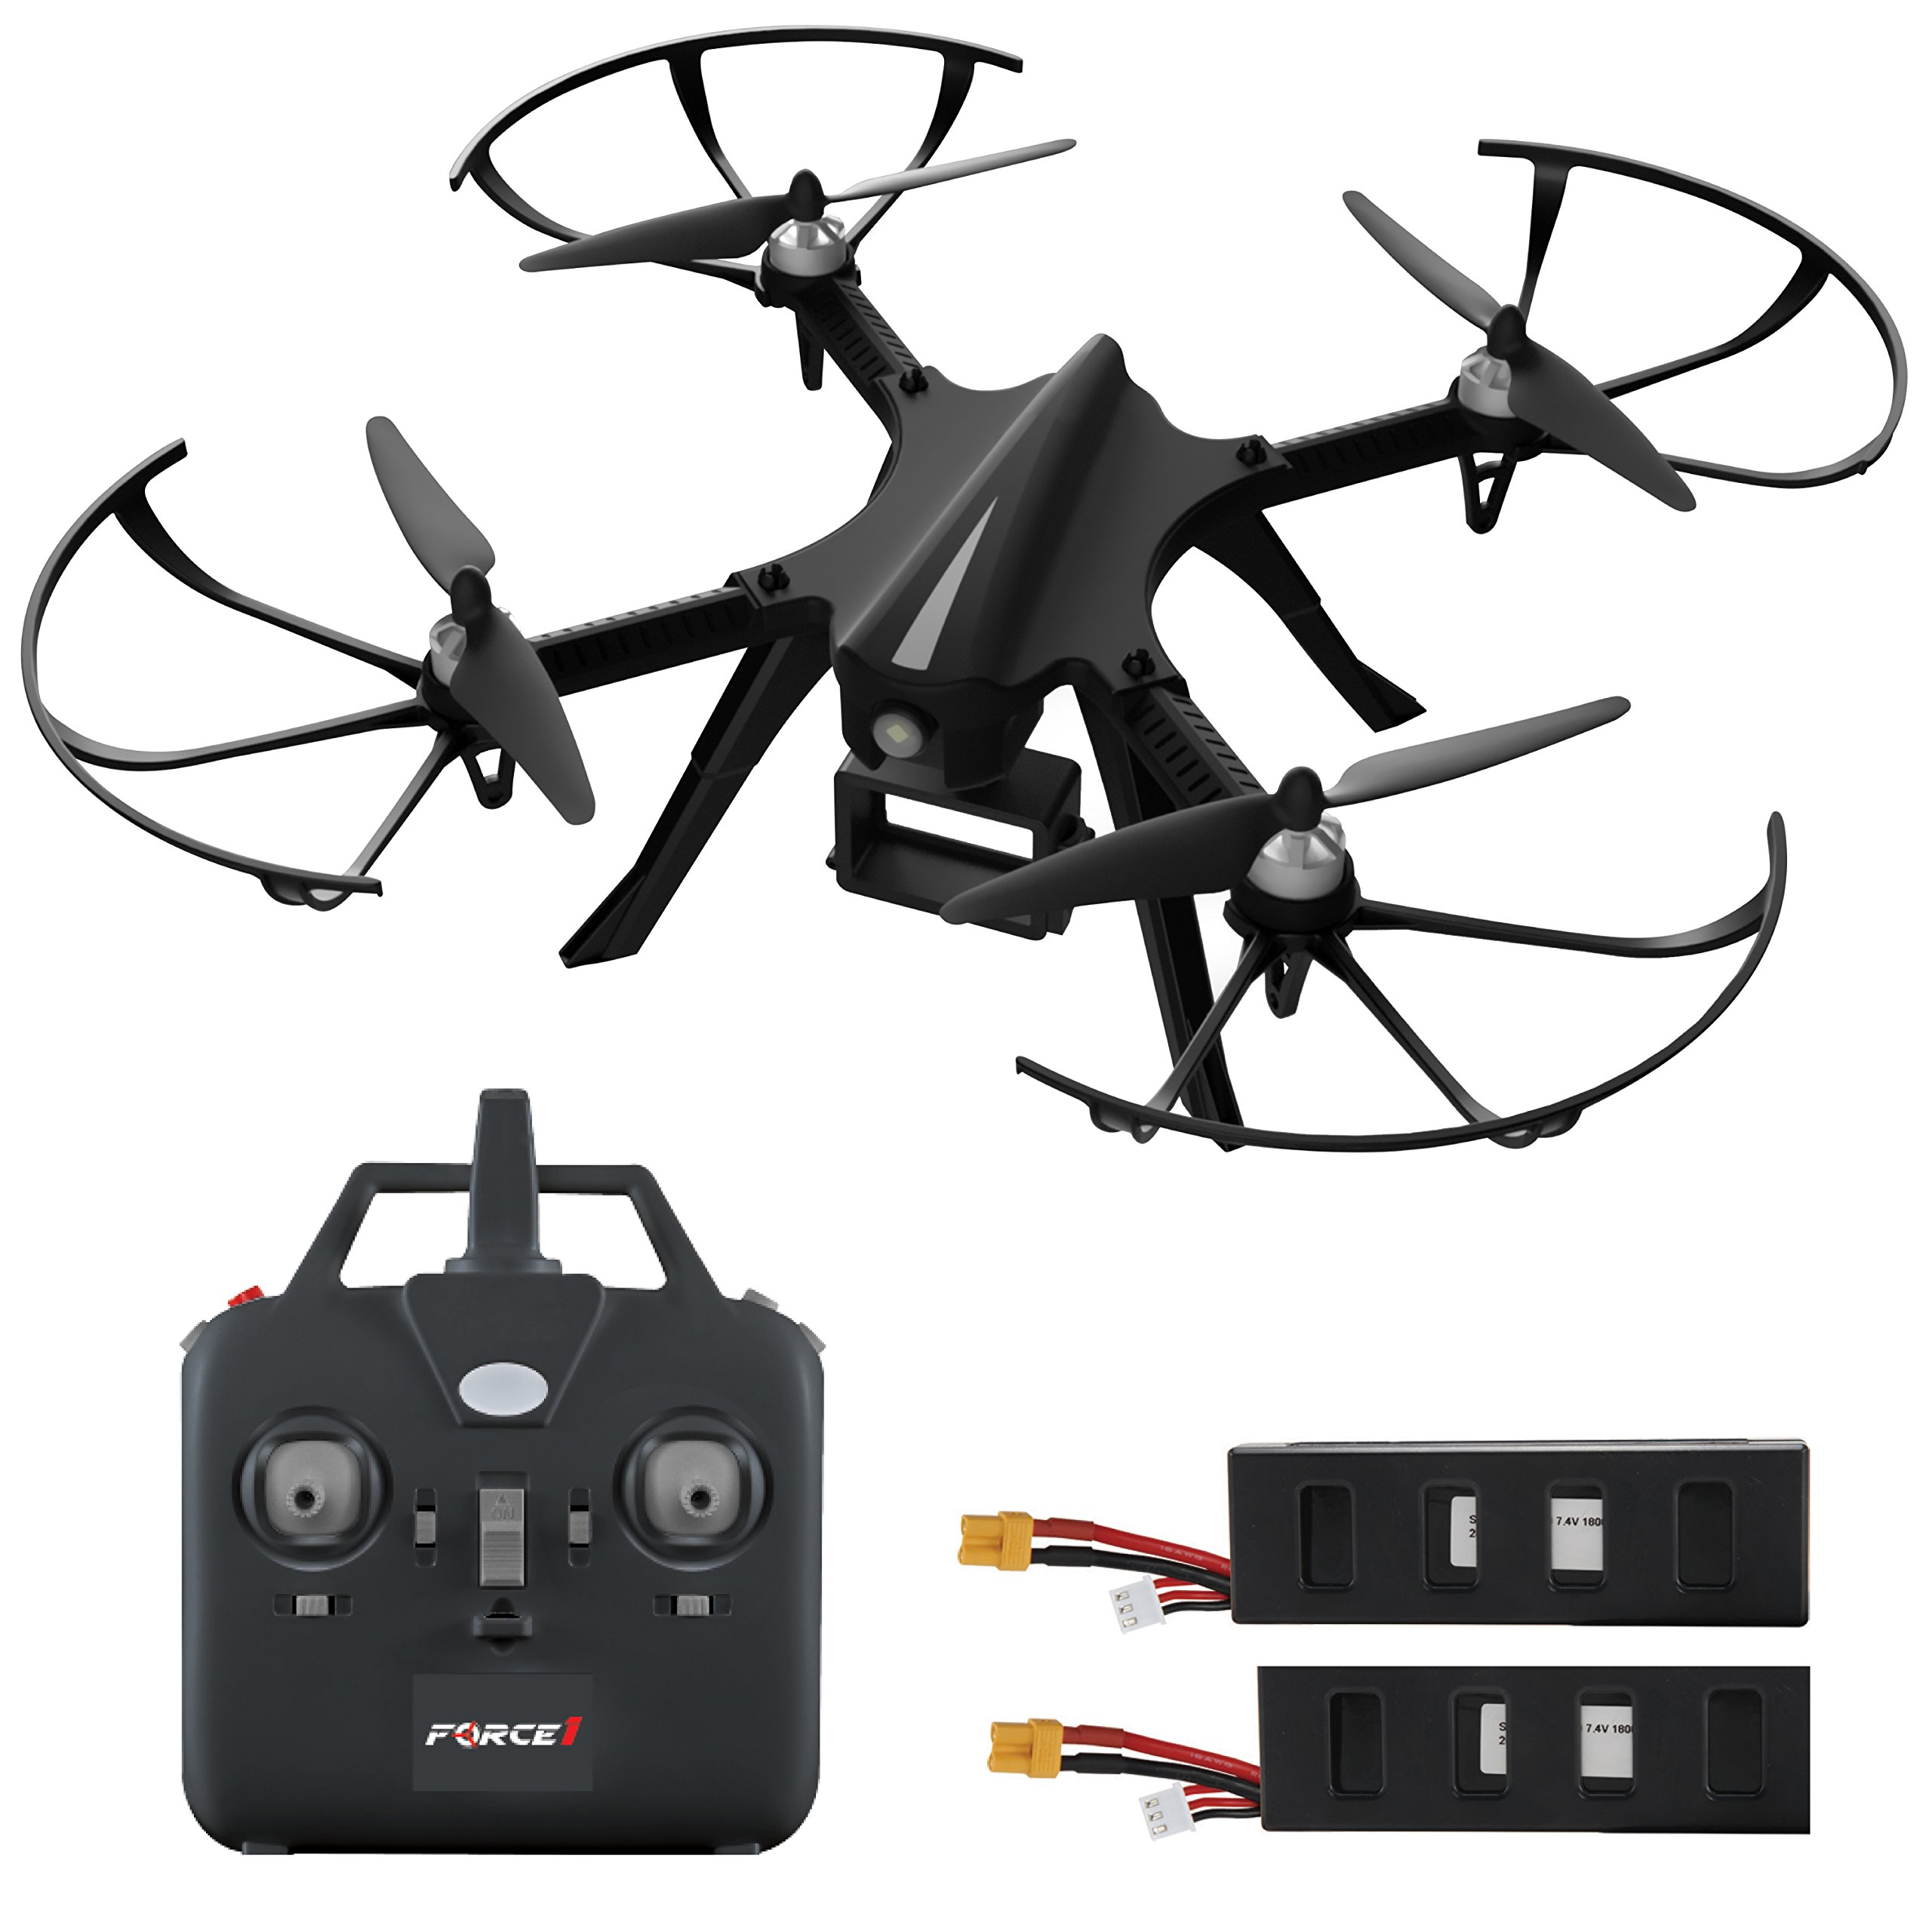 Force1 Brushless Quadcopter Drone F100 - Hero 3 or 4 Compatible GoPro Drone with 2 Batteries, Advanced Brushless Motors for Longer, Quieter Flight (Camera not Included)